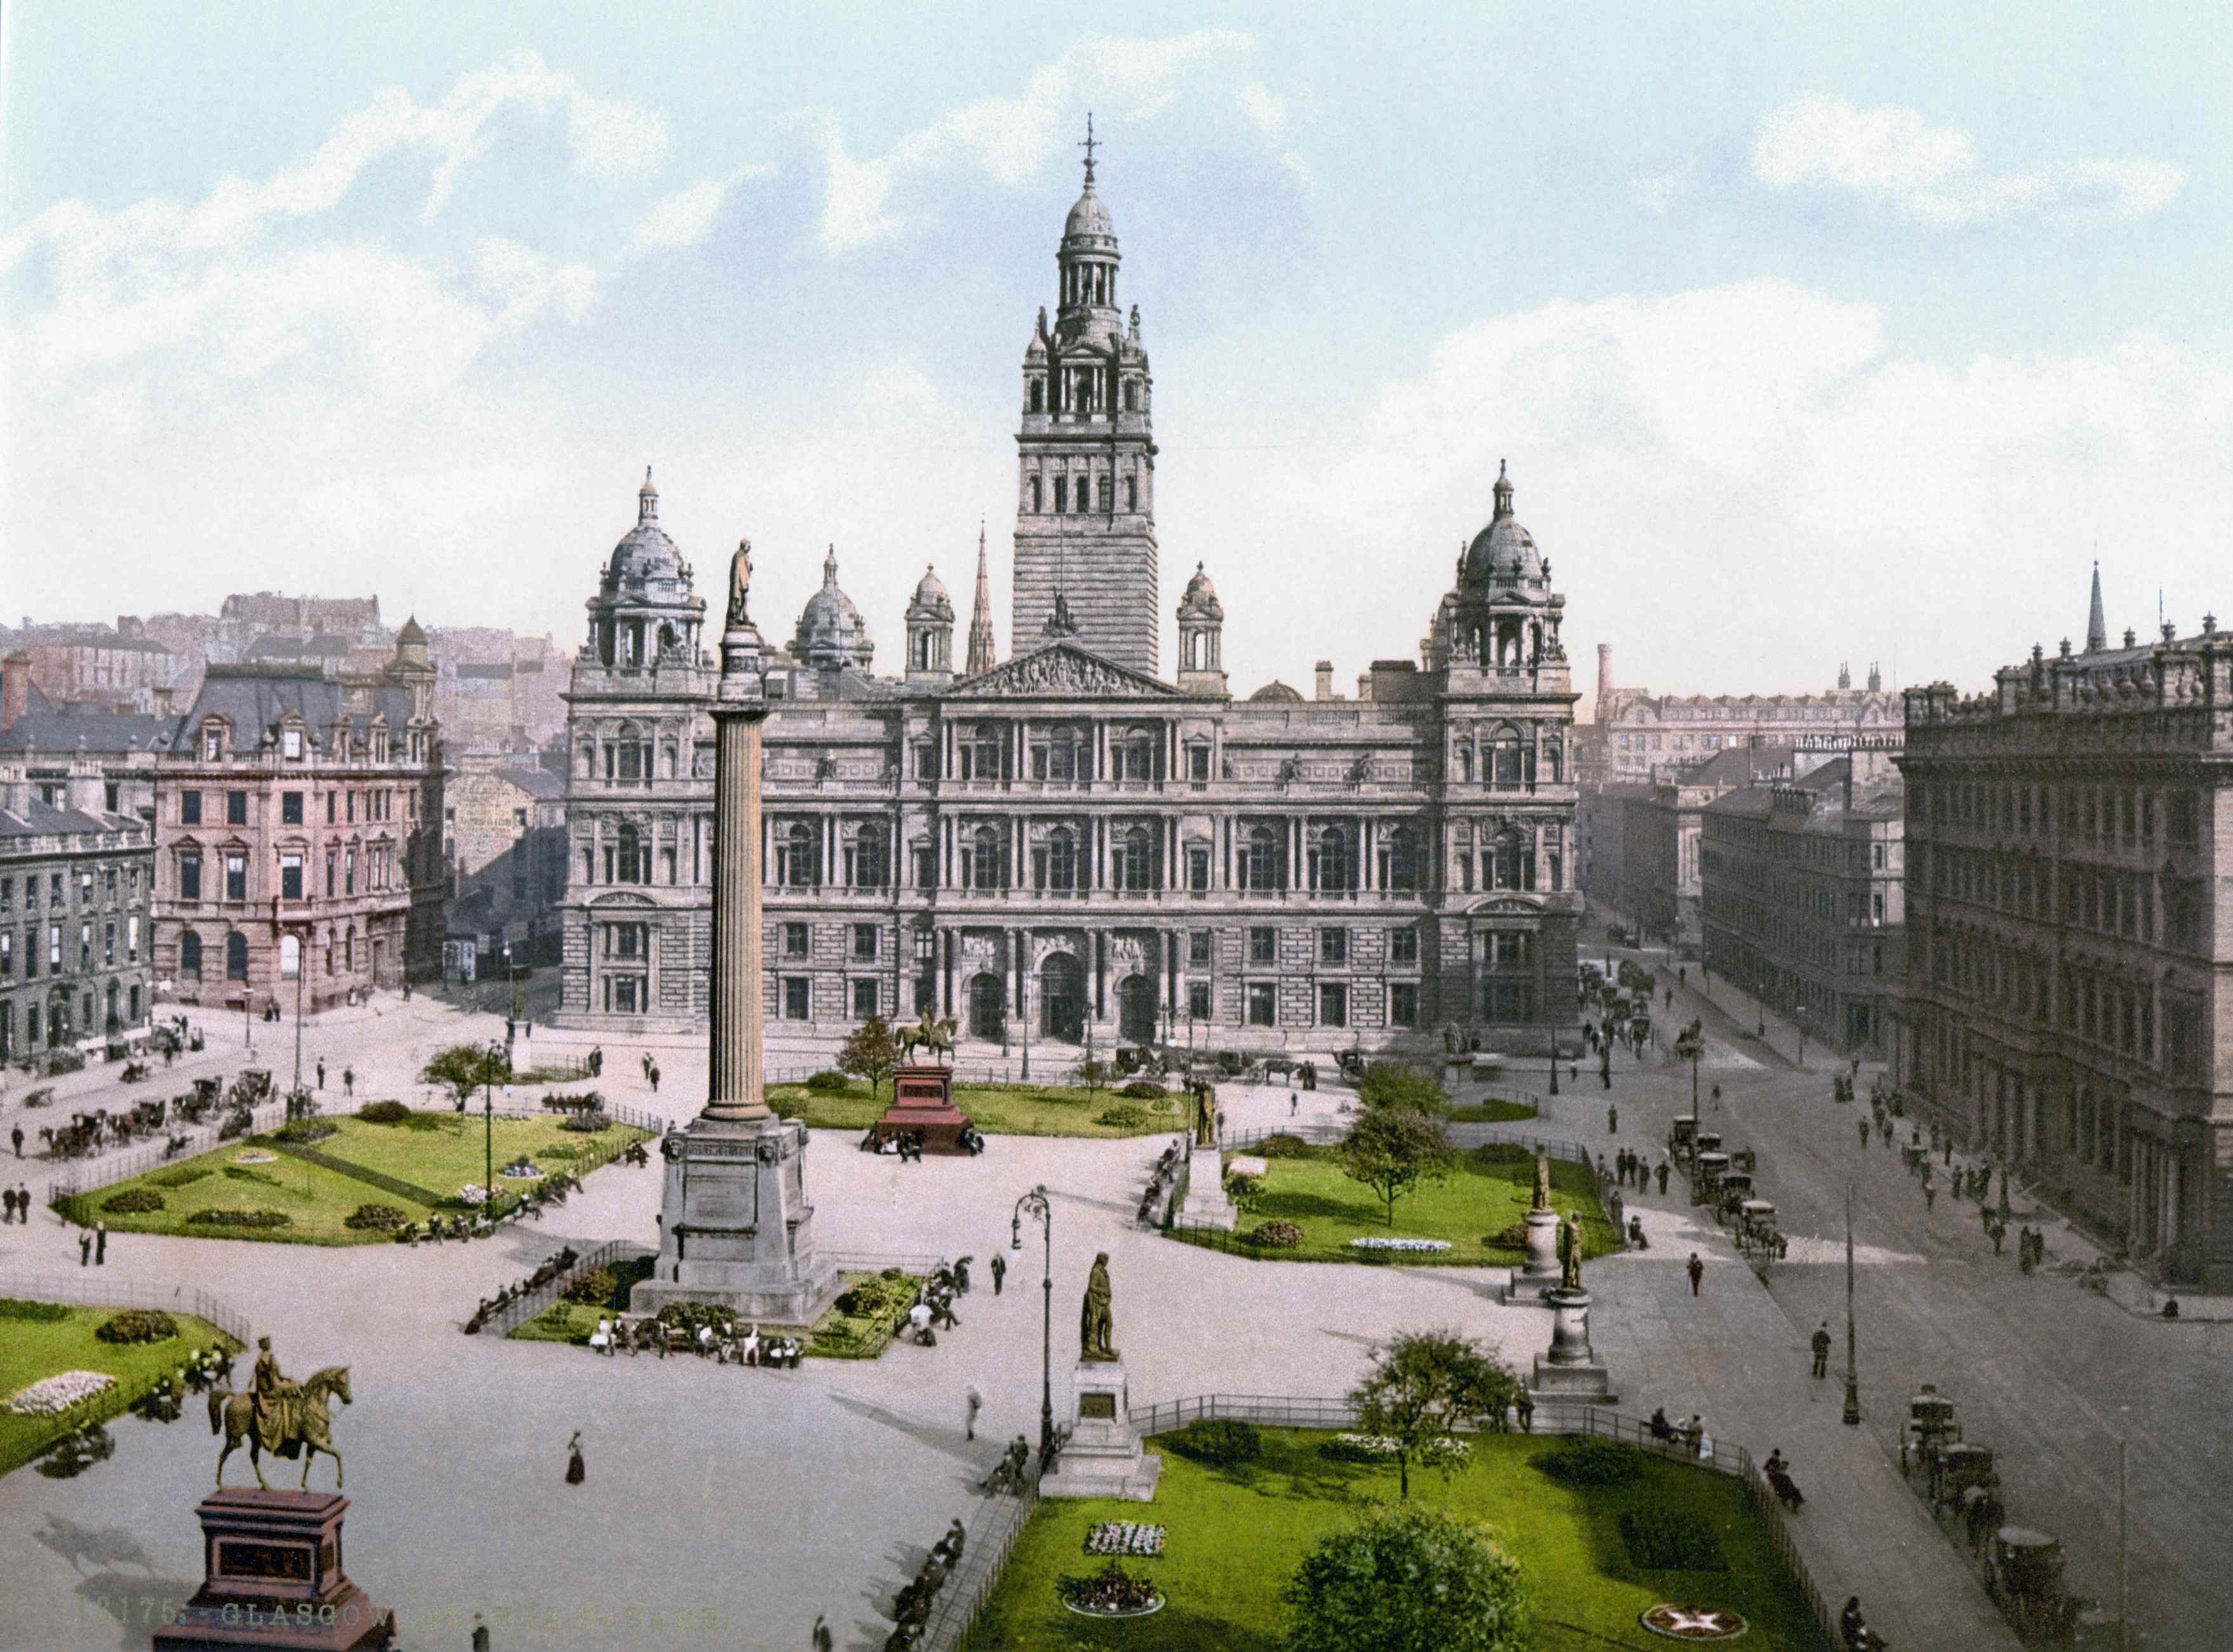 File:Glasgow-George-Square.jpg - Wikipedia, the free encyclopedia